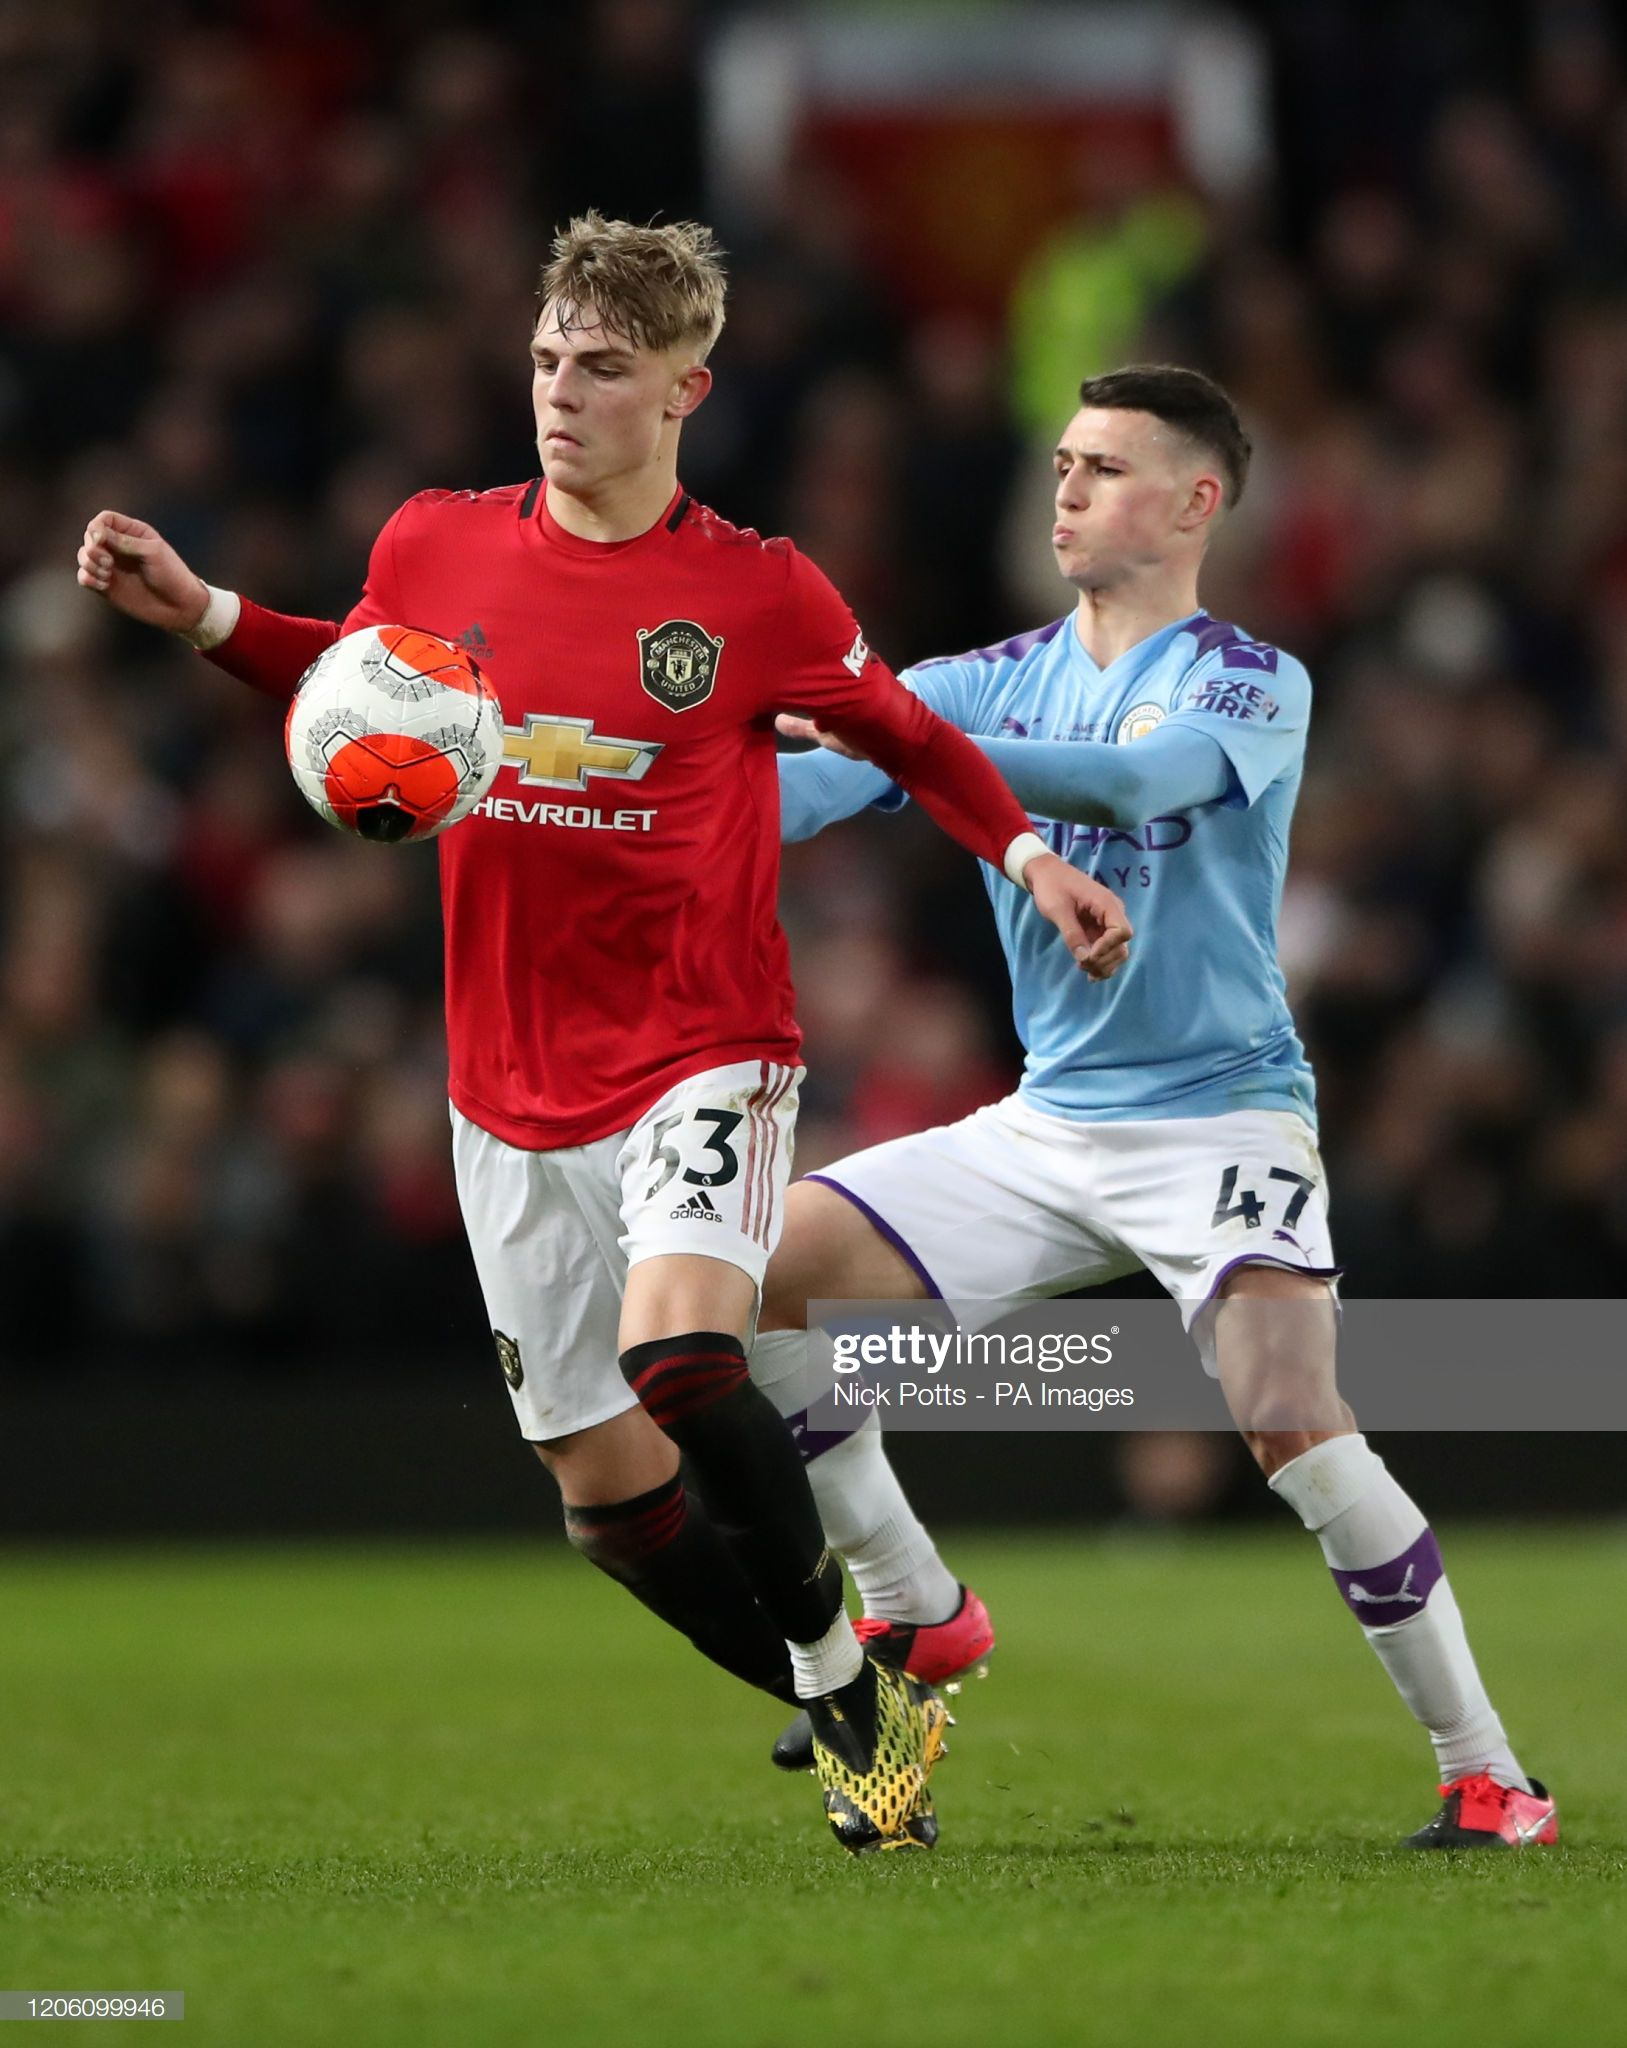 Manchester United S Brandon Williams And Manchester City S Phil Foden In 2020 Manchester United Players Manchester United Brandon Williams